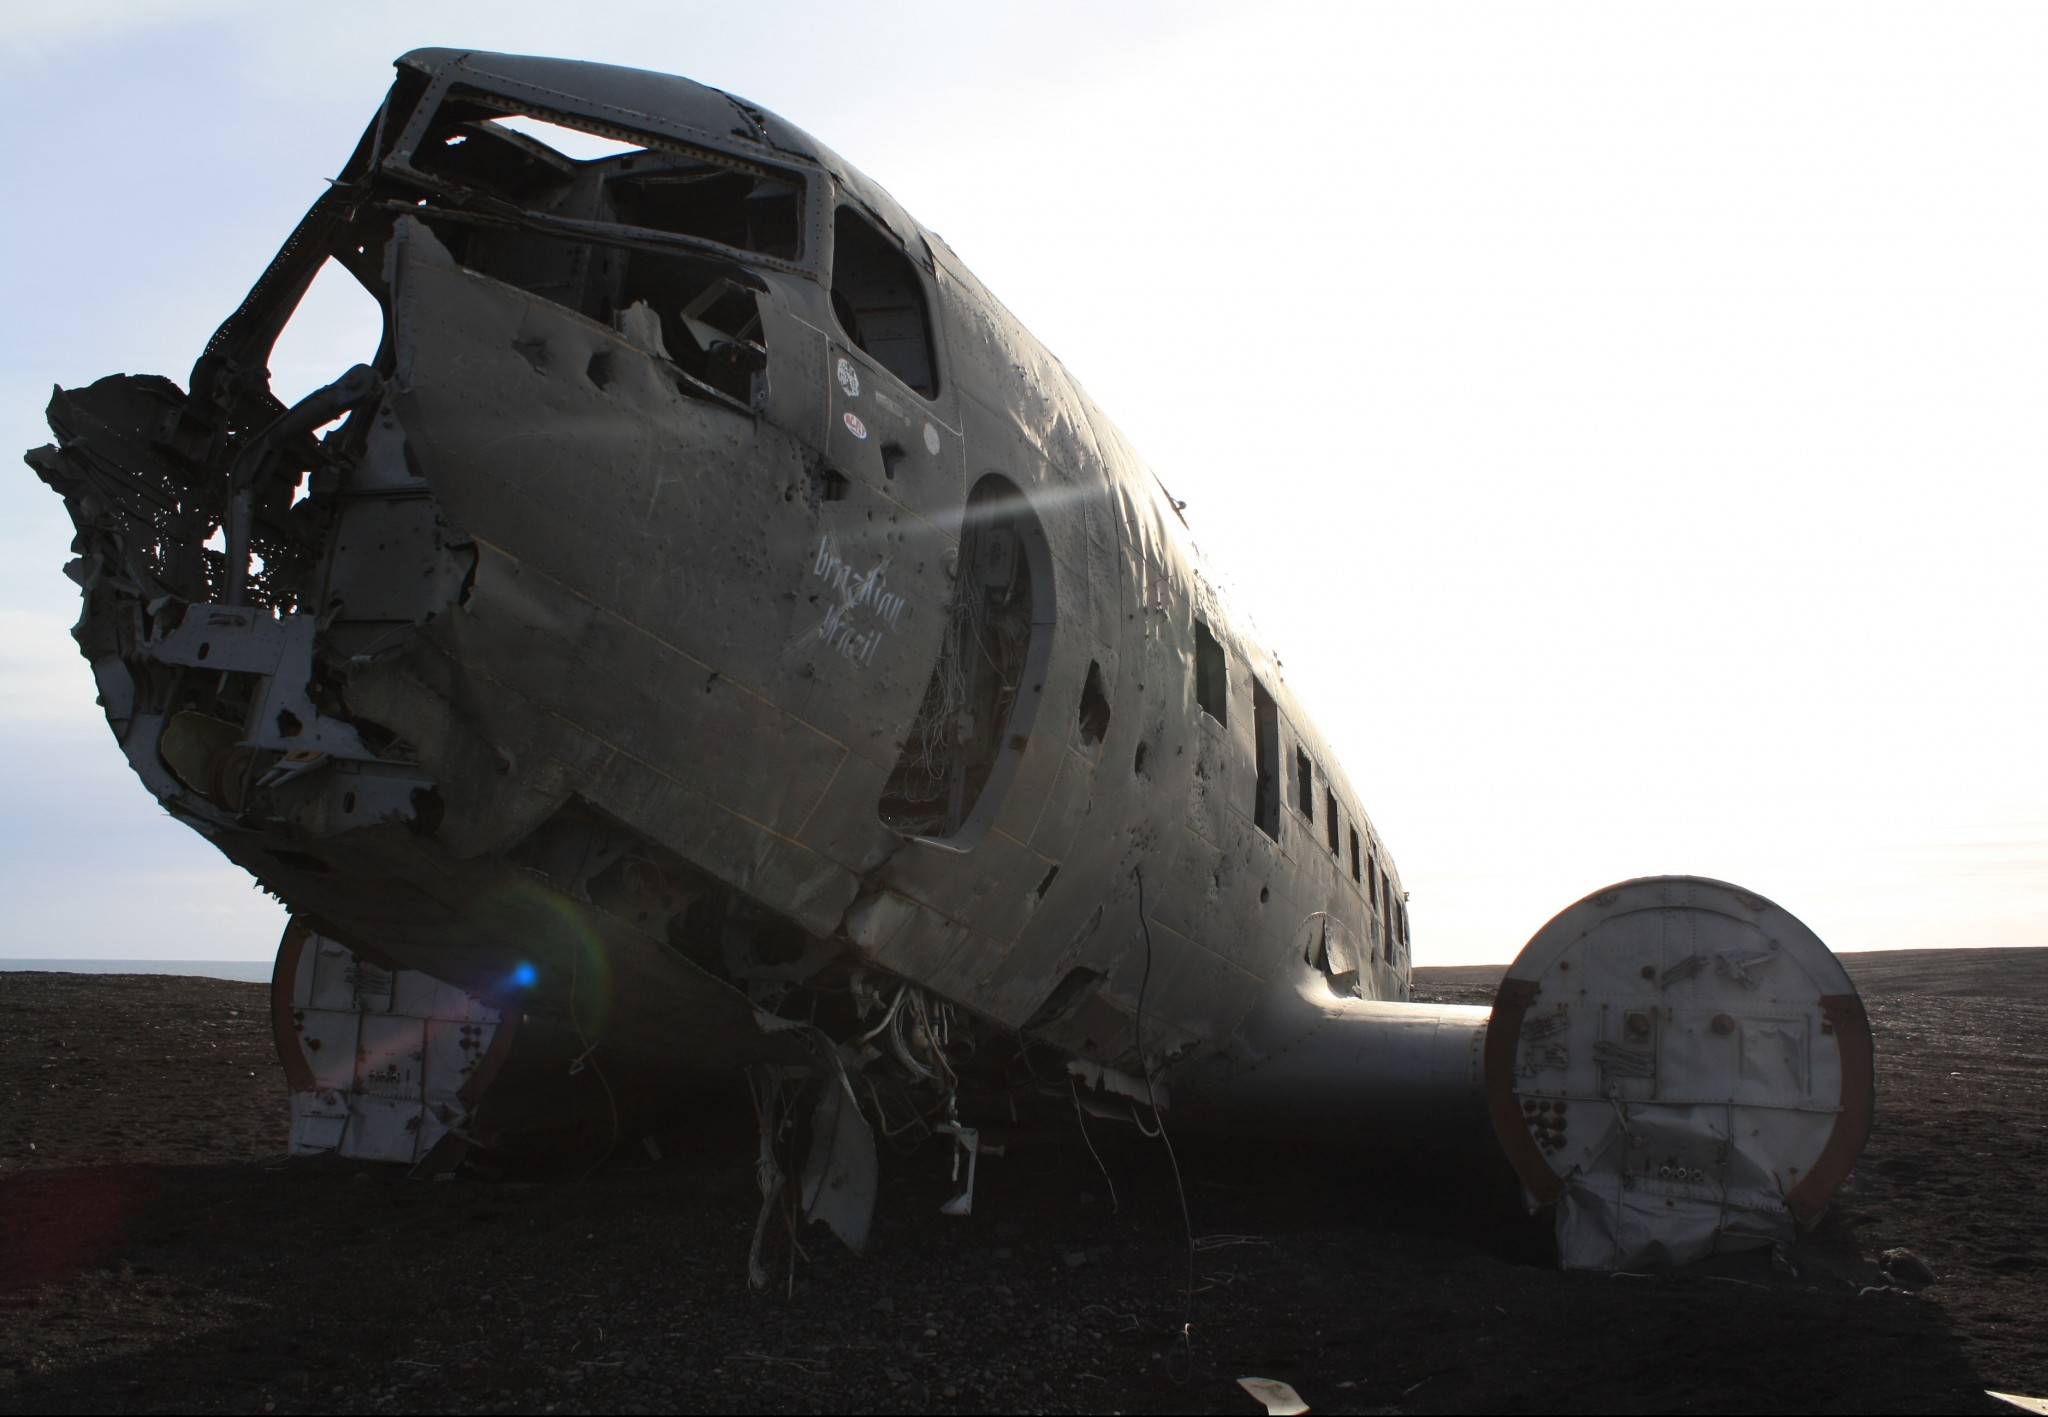 The Dramatic Plane Wreck Abandoned on an Icelandic Beach